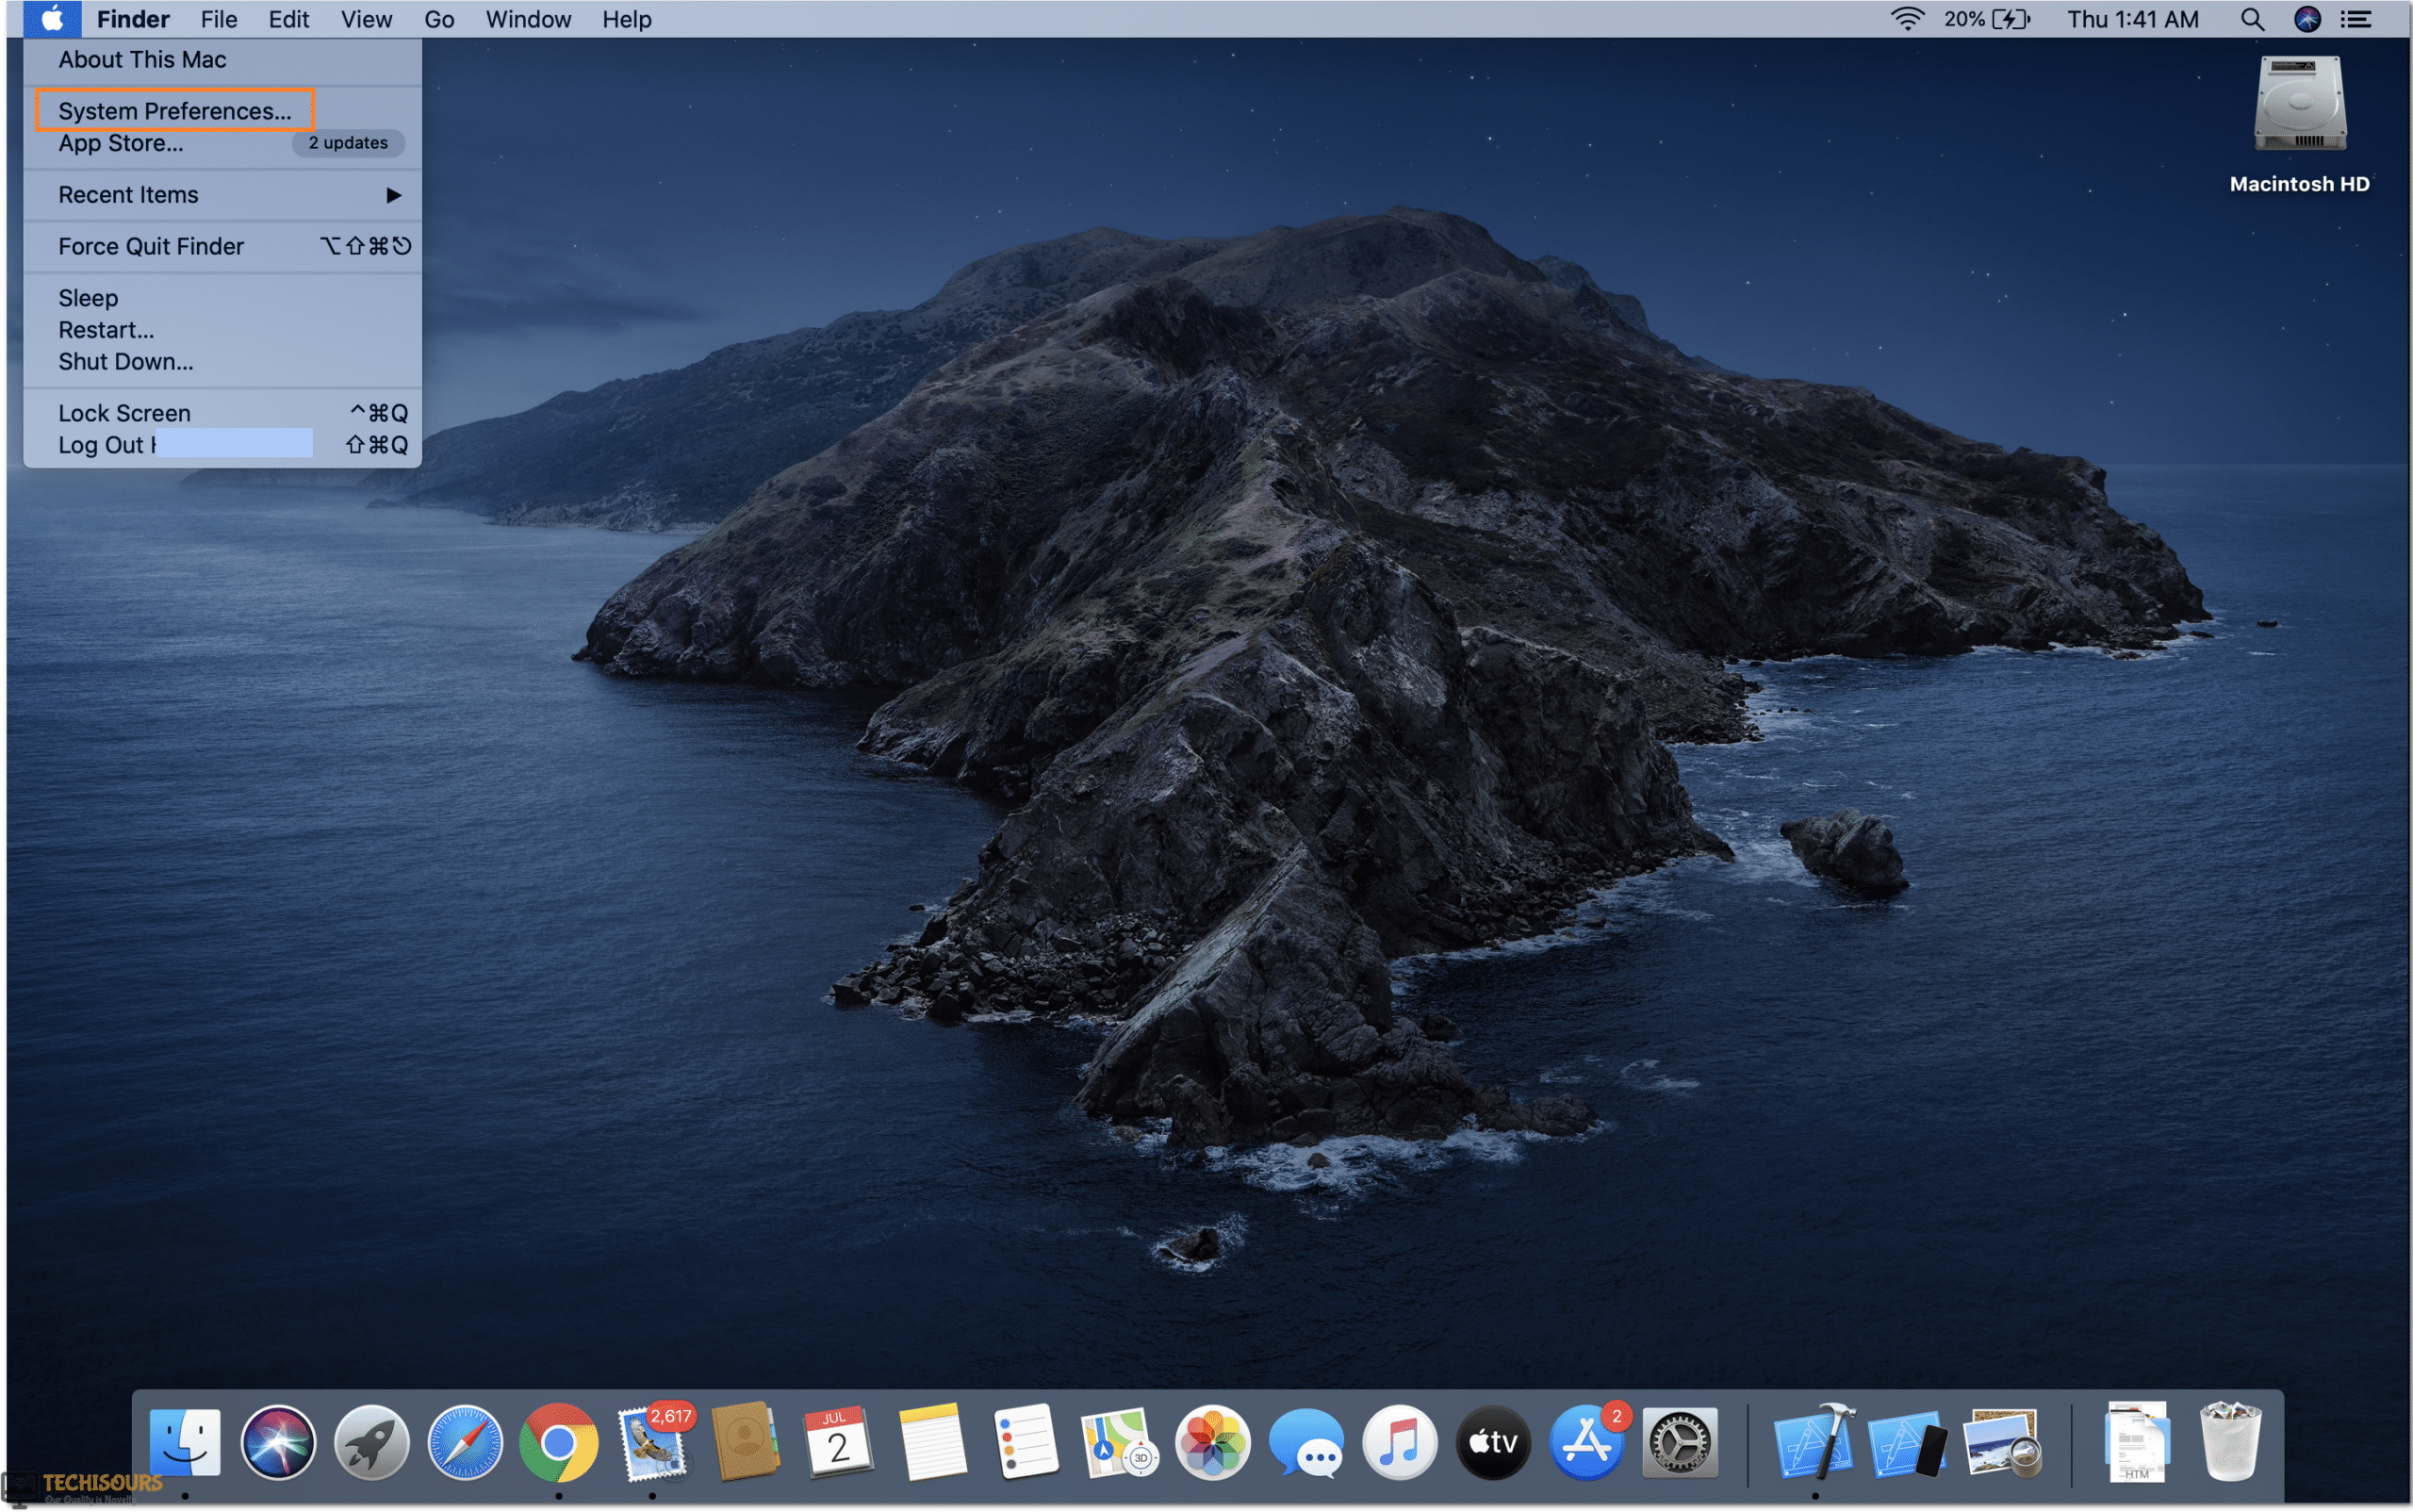 Click on System preferences to get rid of spotify error code 4